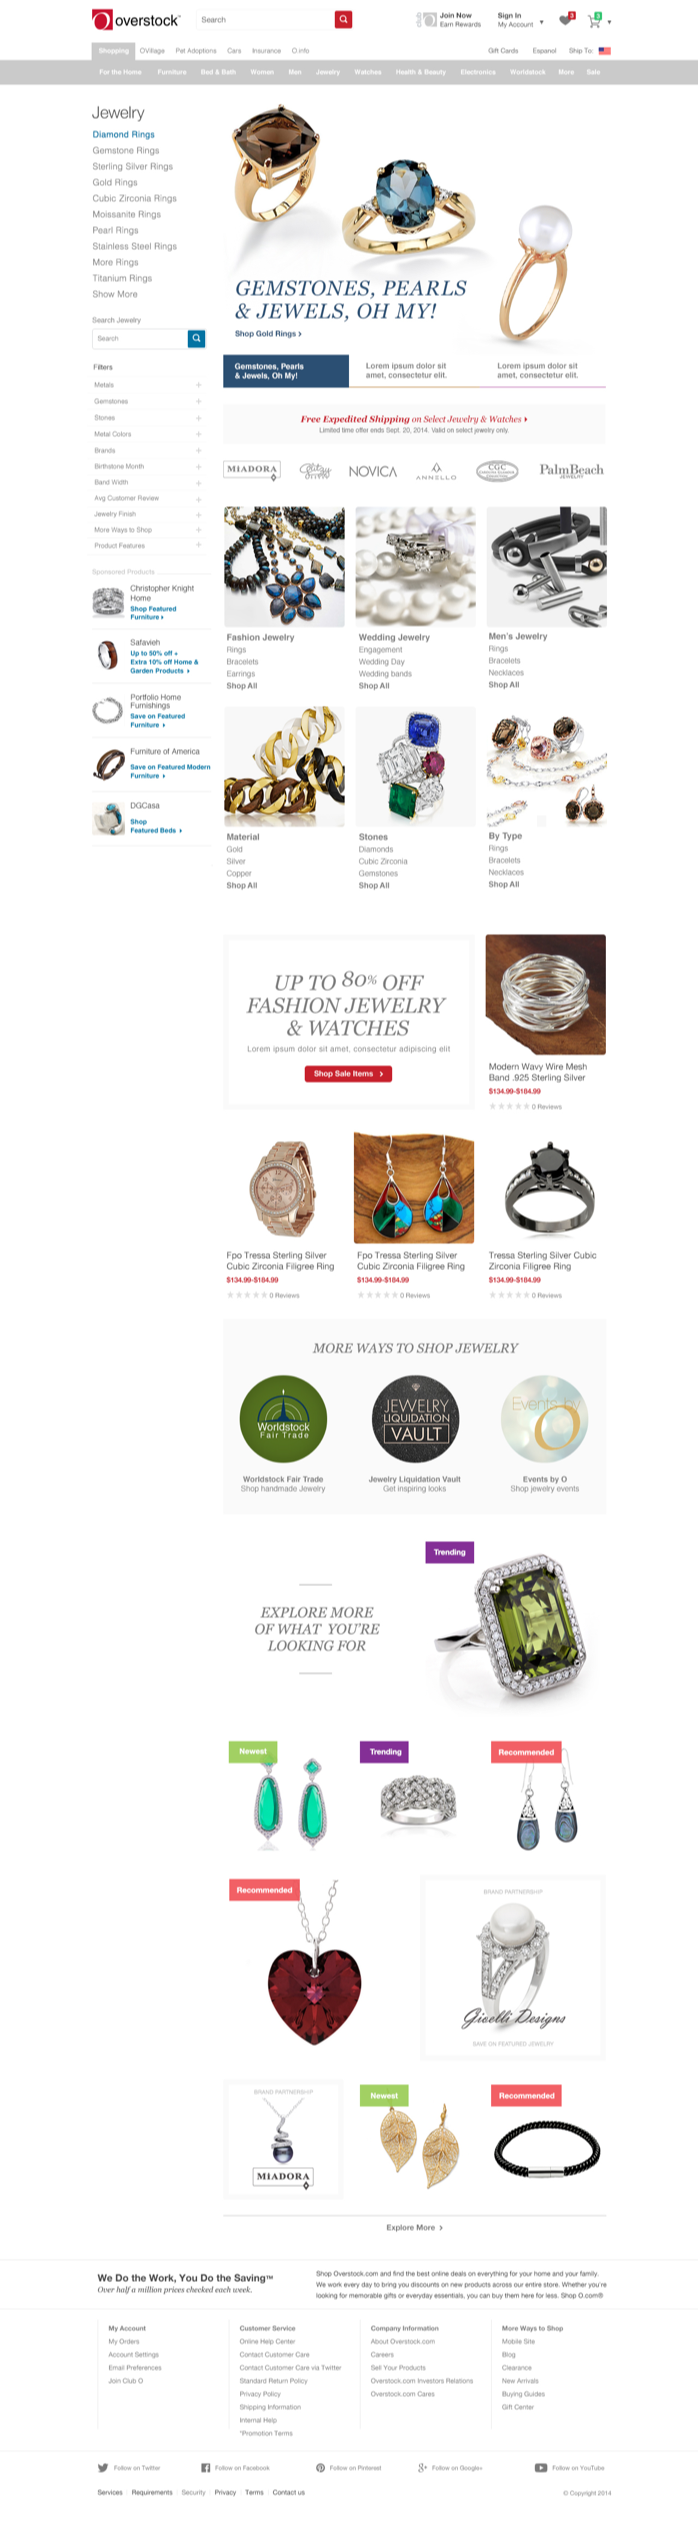 Overstock_Jewelry_0913a.png